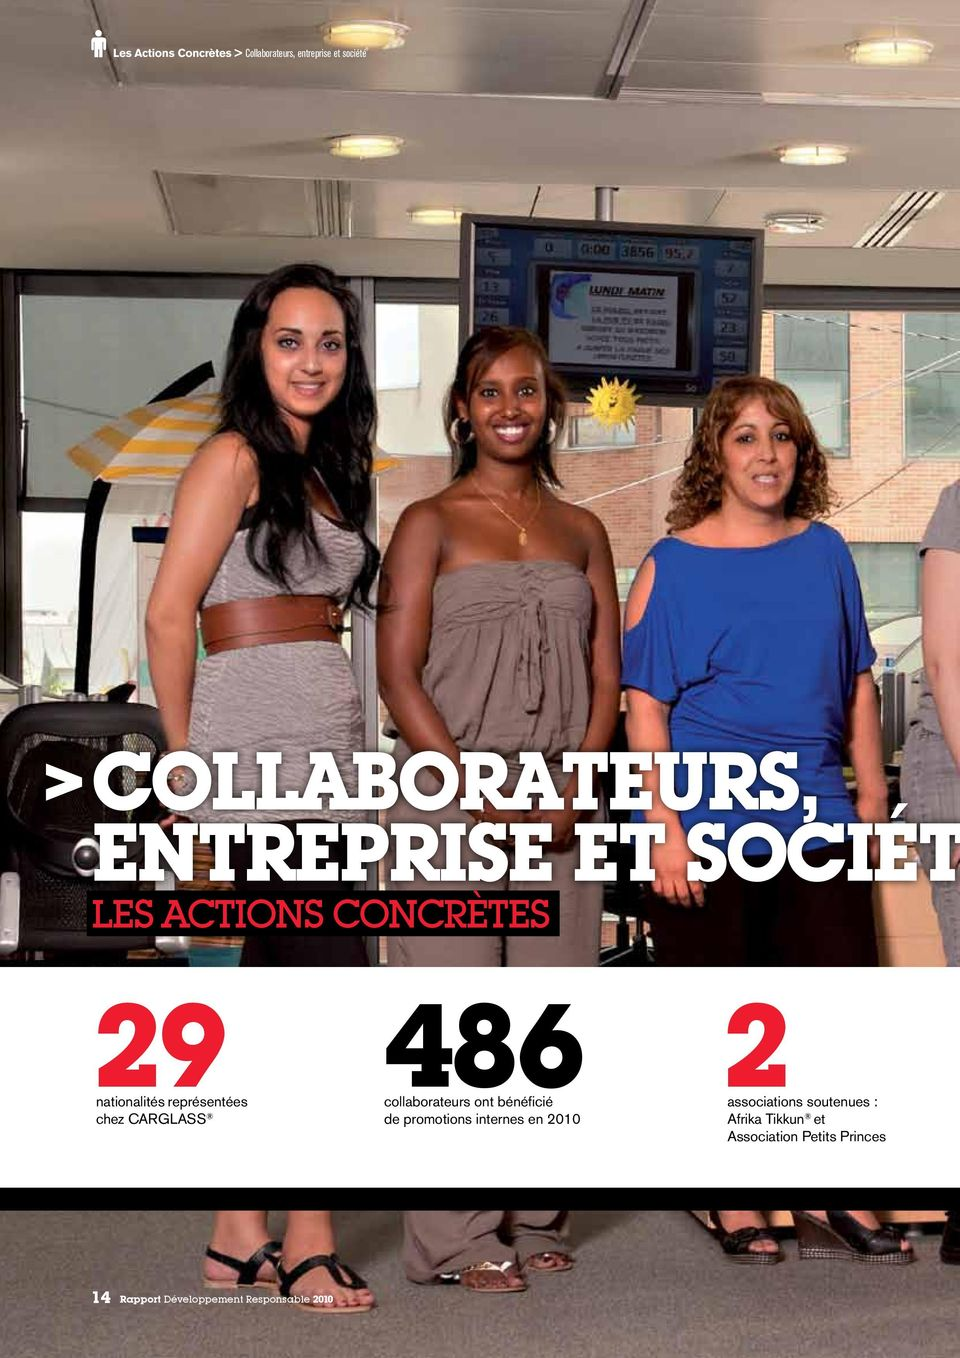 486 collaborateurs ont bénéficié associations de promotions internes en 2010 2